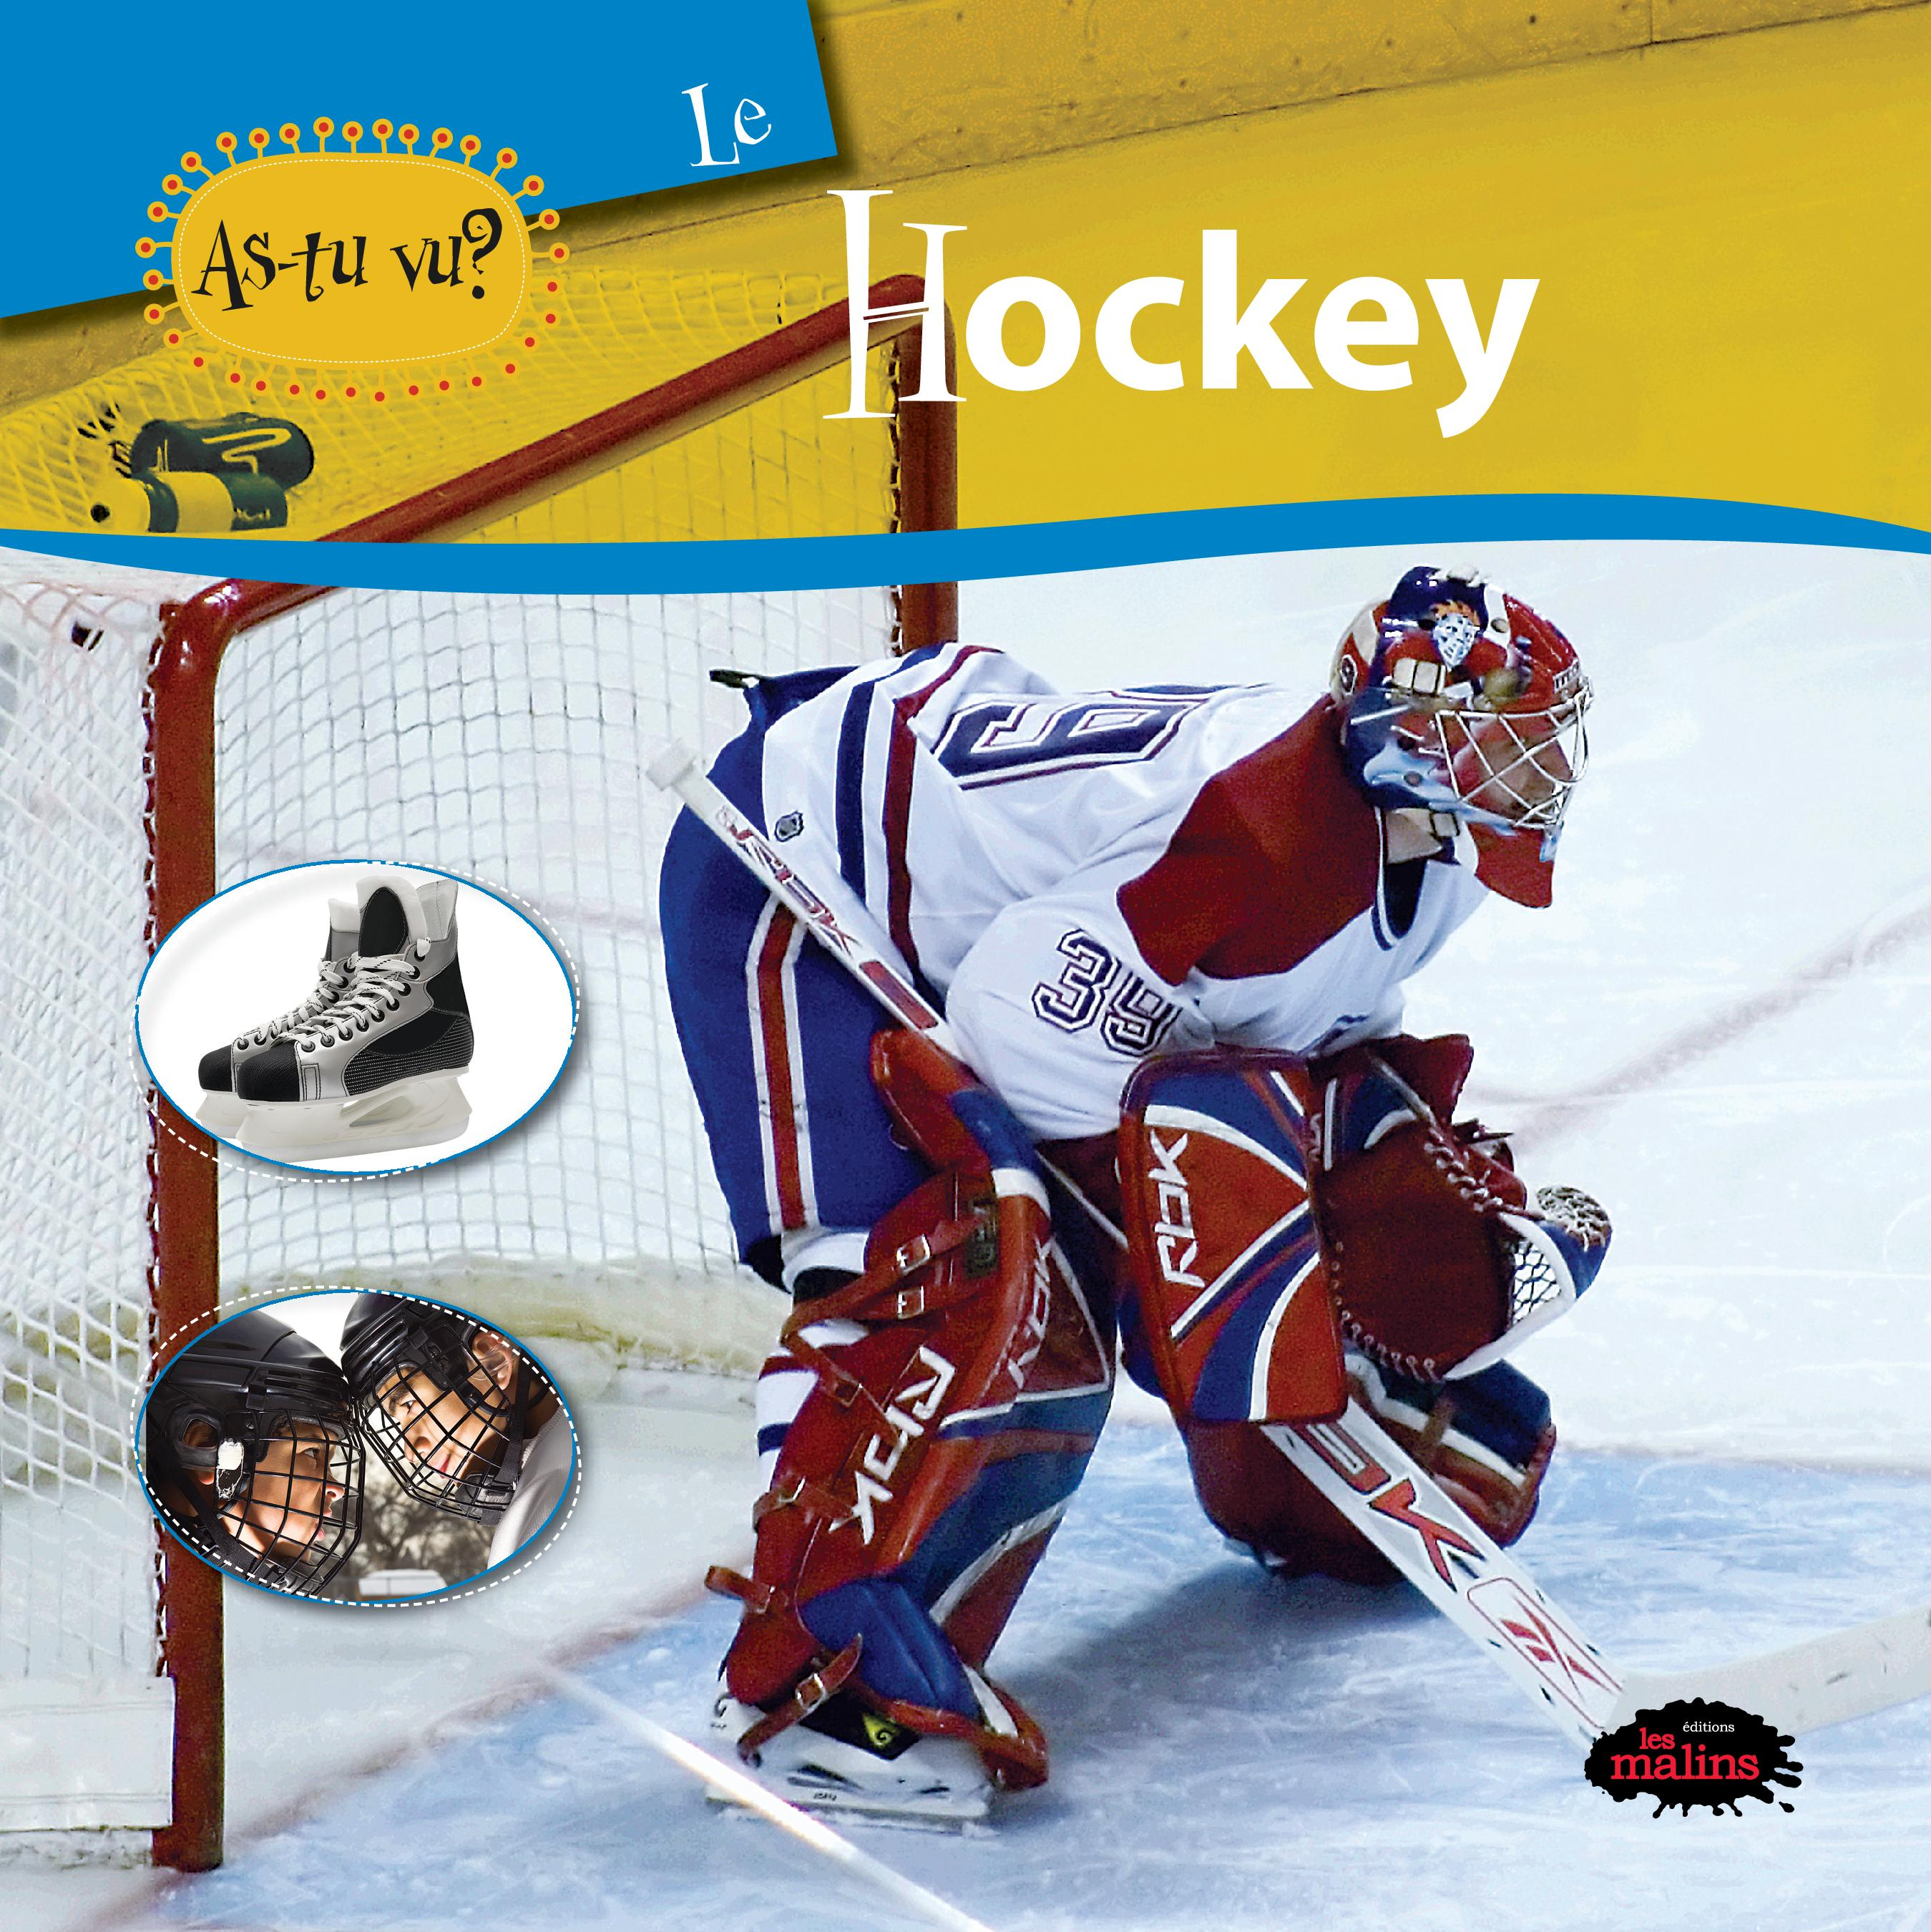 As-tu vu? Le hockey